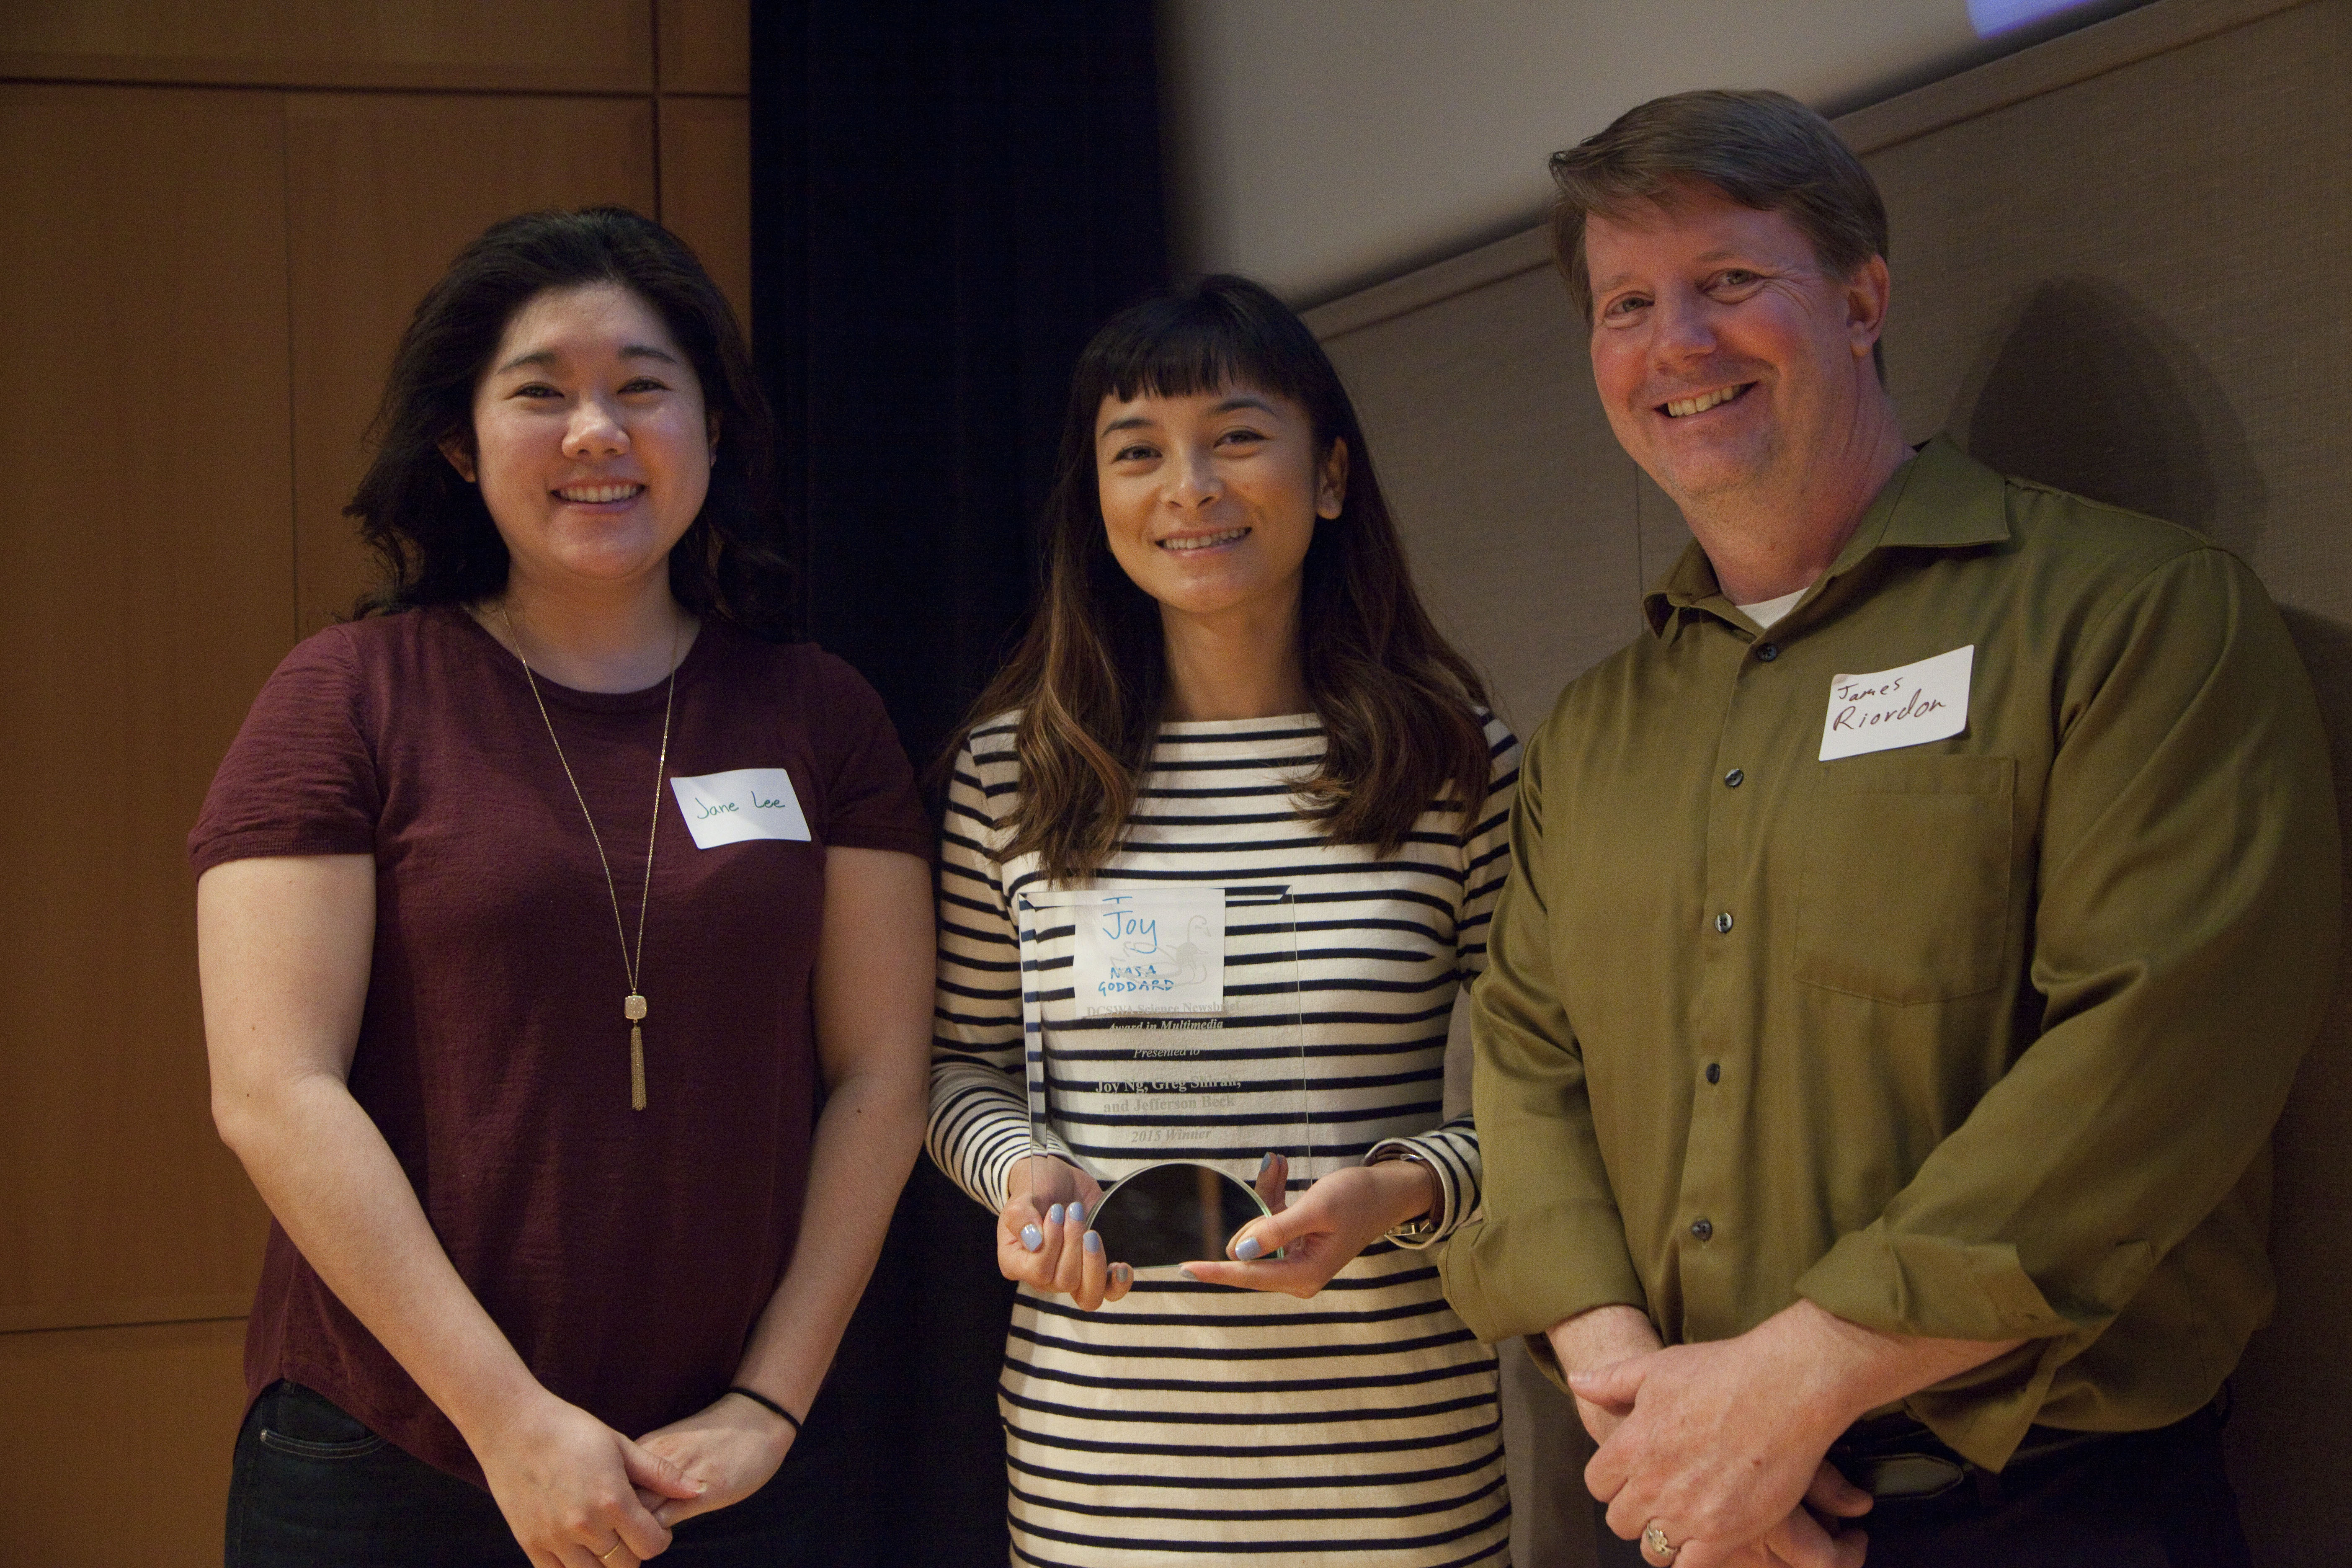 Joy Ng receives the 2015 multimedia award on behalf of her NASA Goddard team.